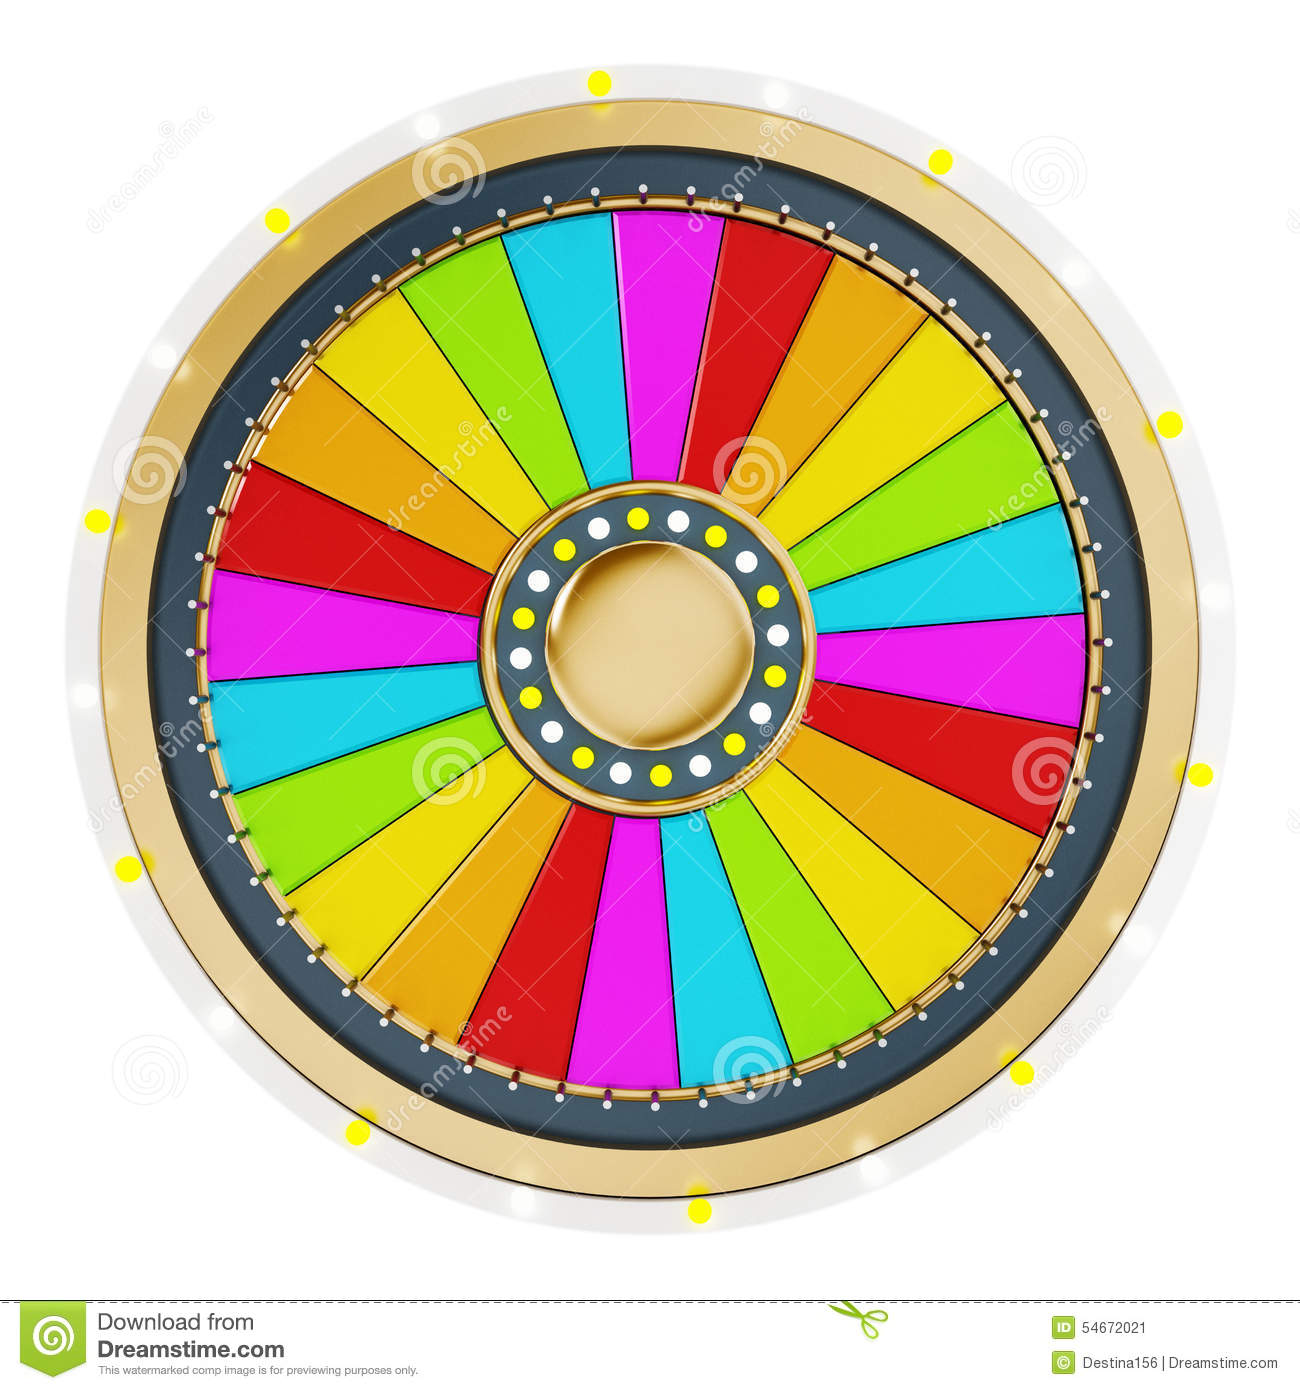 12 prize wheel vector images spinning prize wheel clip art wheel of fortune prizes and spin. Black Bedroom Furniture Sets. Home Design Ideas